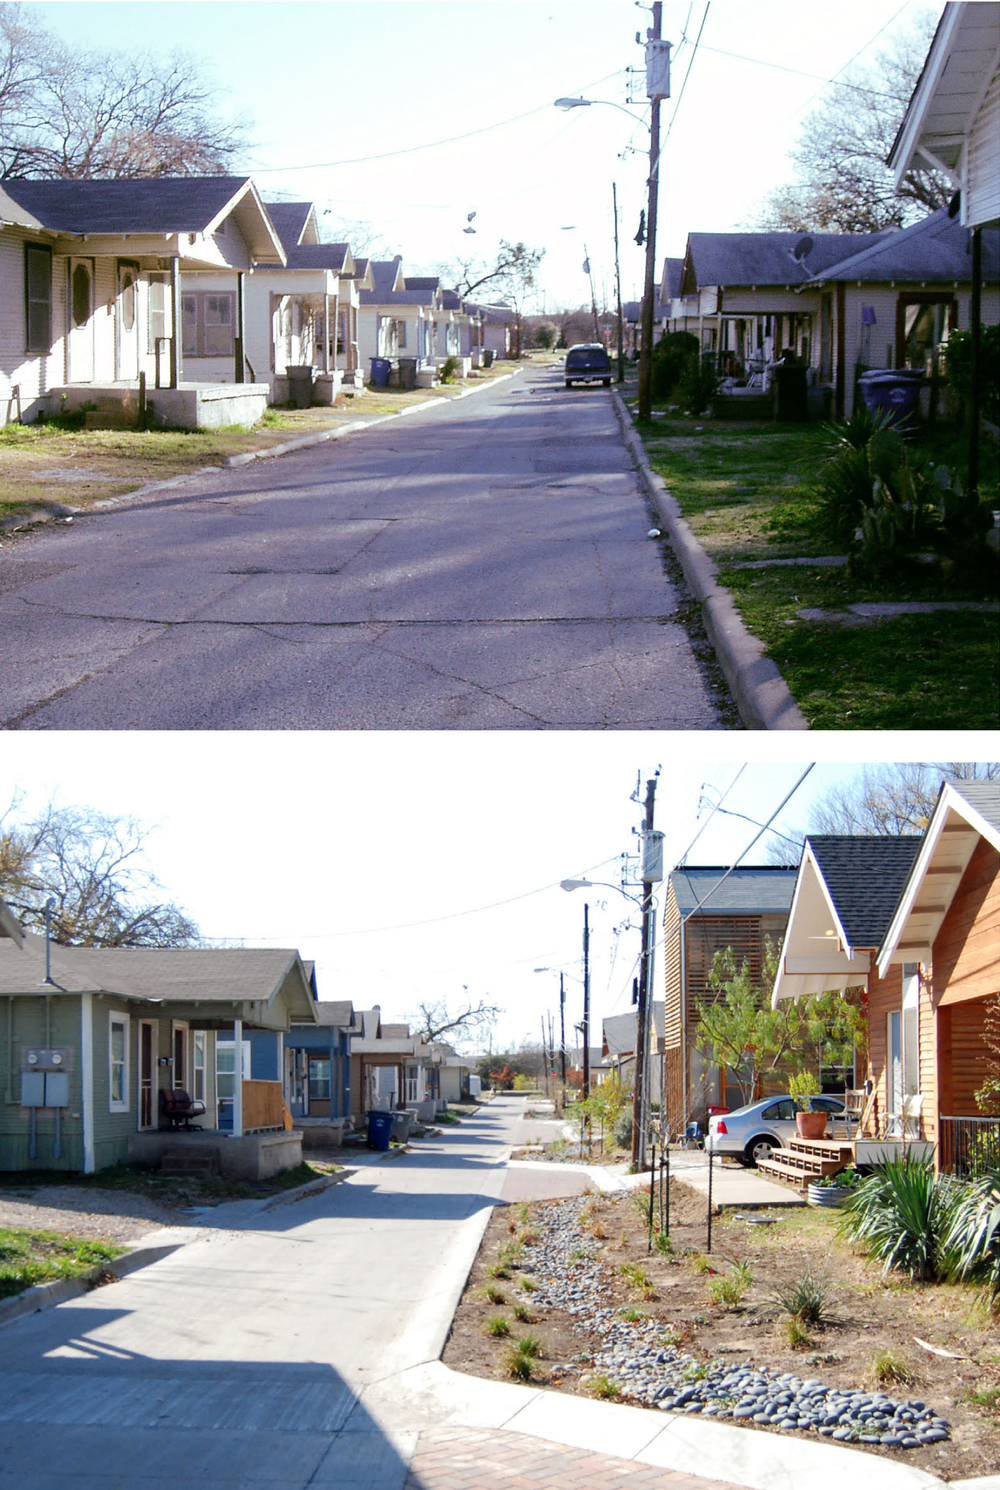 Green Street, before and after